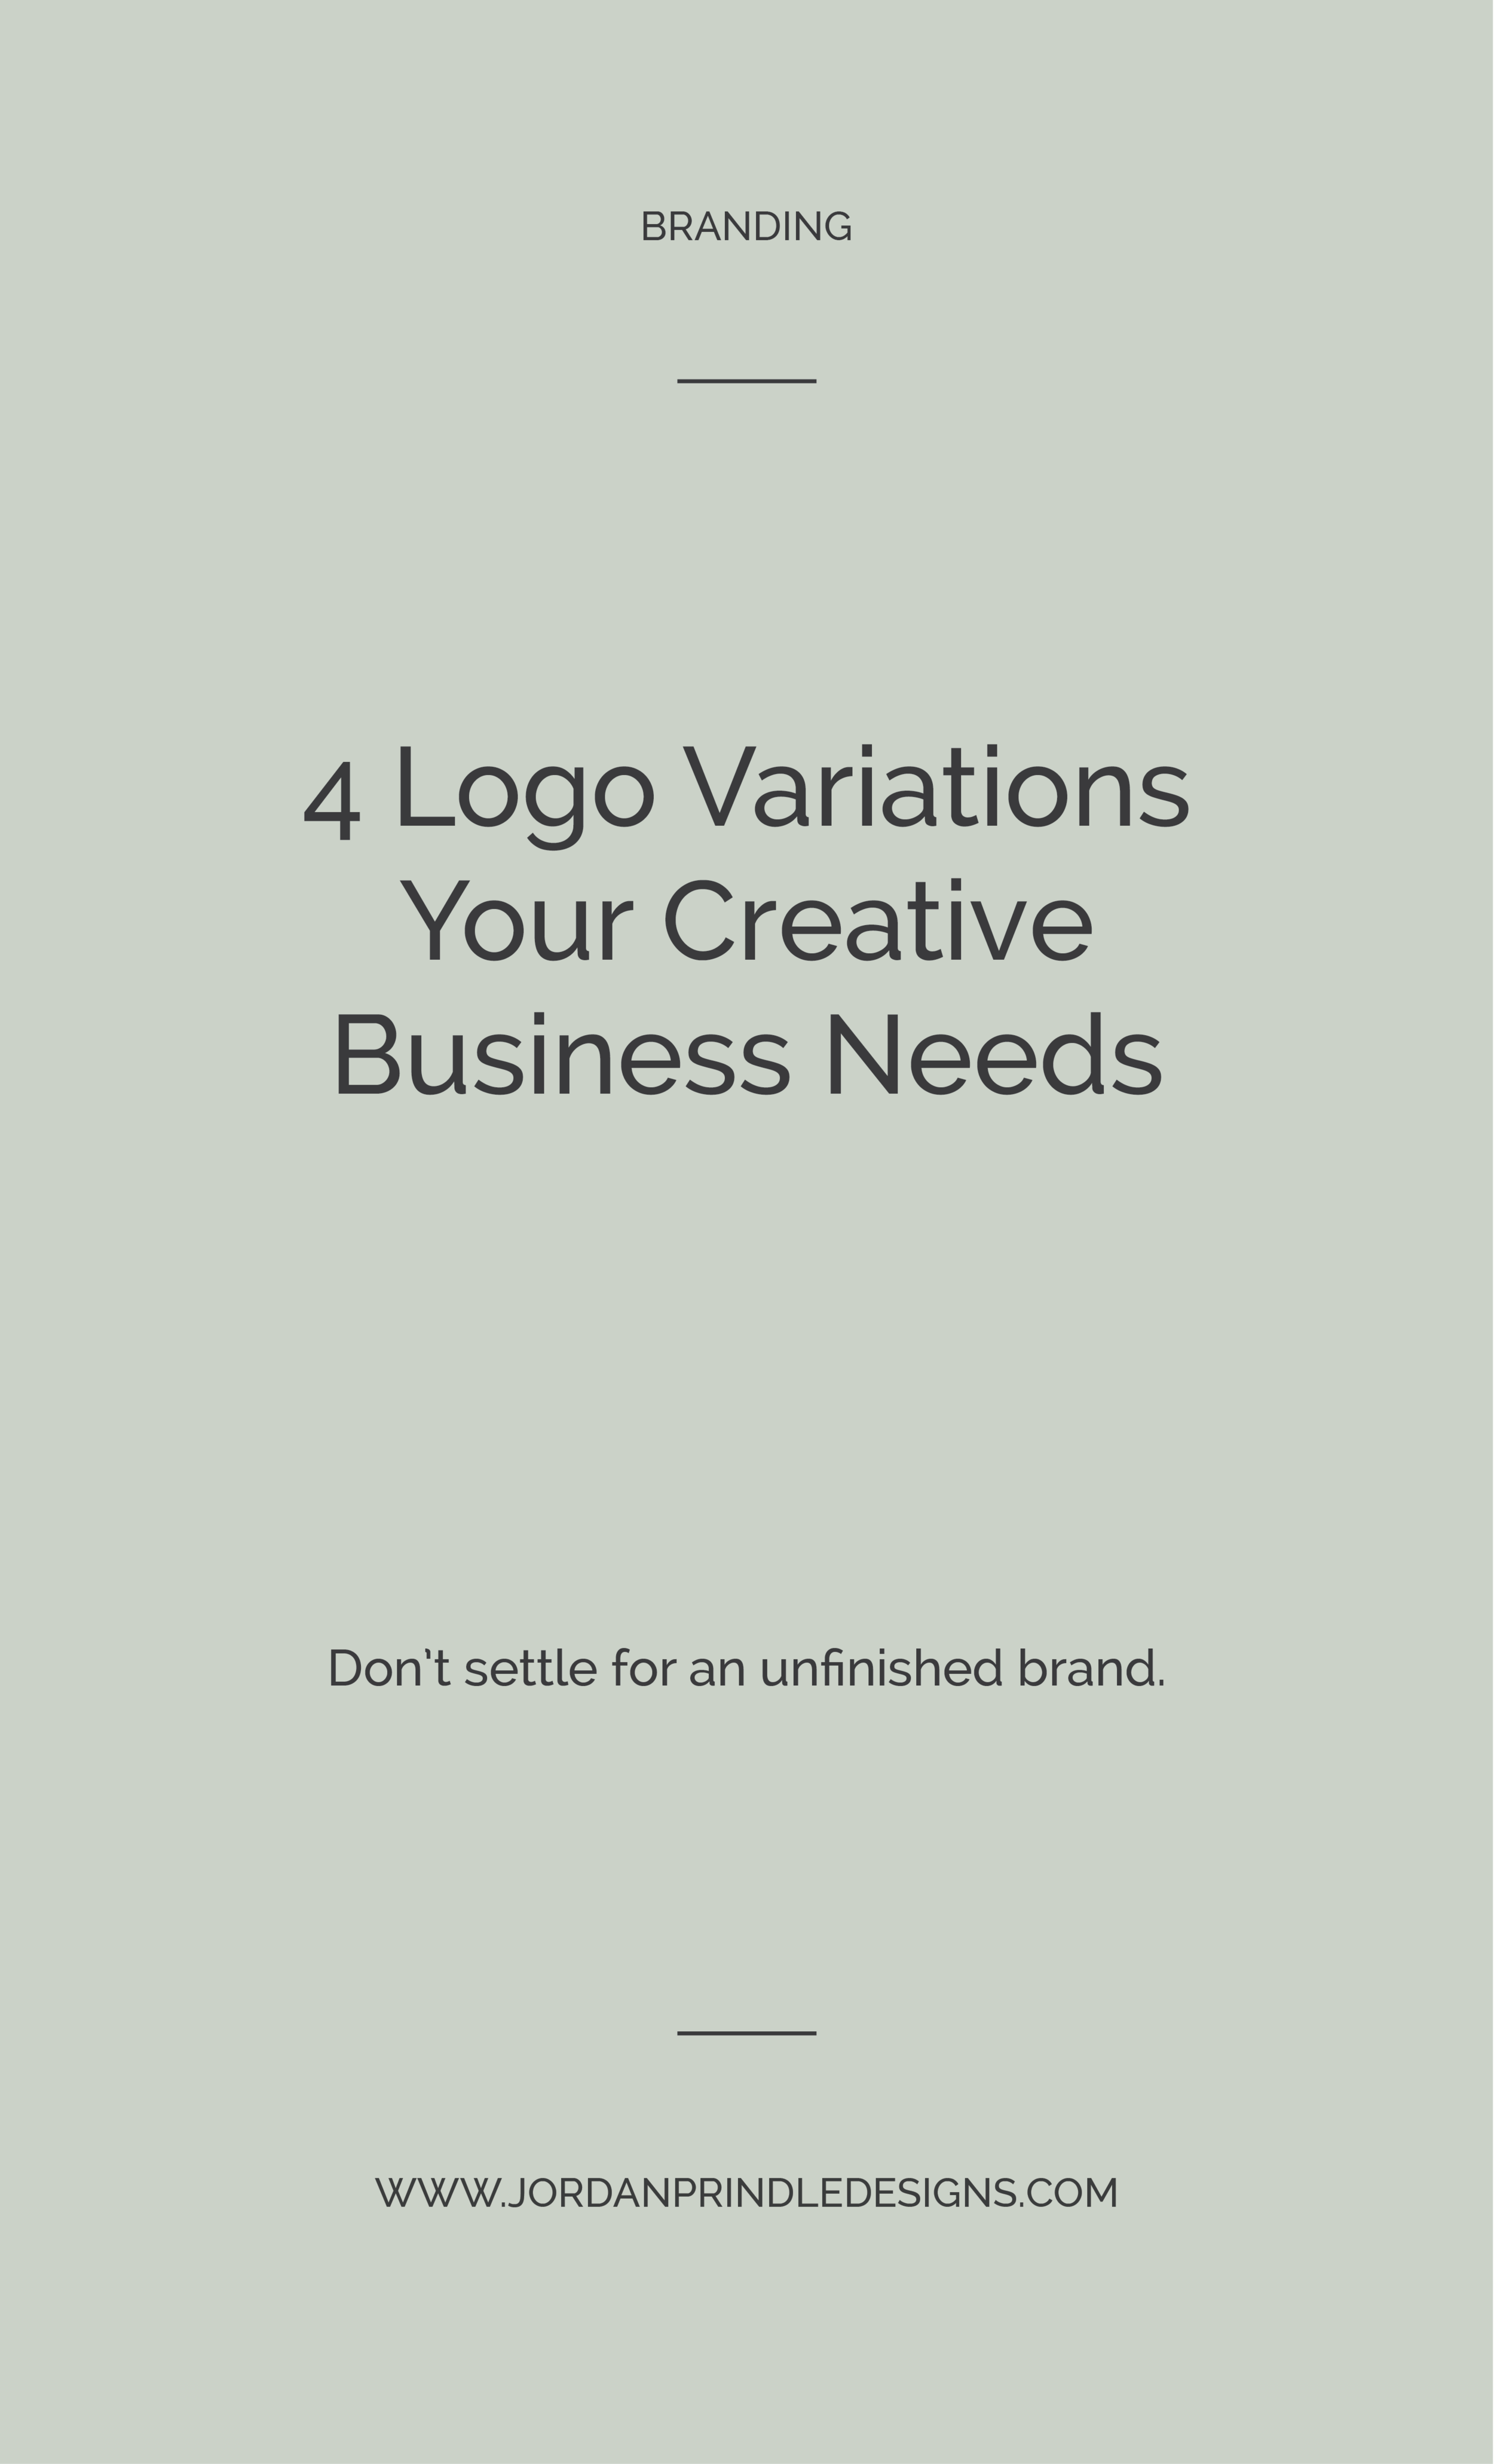 4 Logo Variations Your Creative Business Needs   You have your logo, maybe even a color palette and favicon. But, do you have all four logo variations that your business will need? Read the full blog post at www.jordanprindledesigns.com